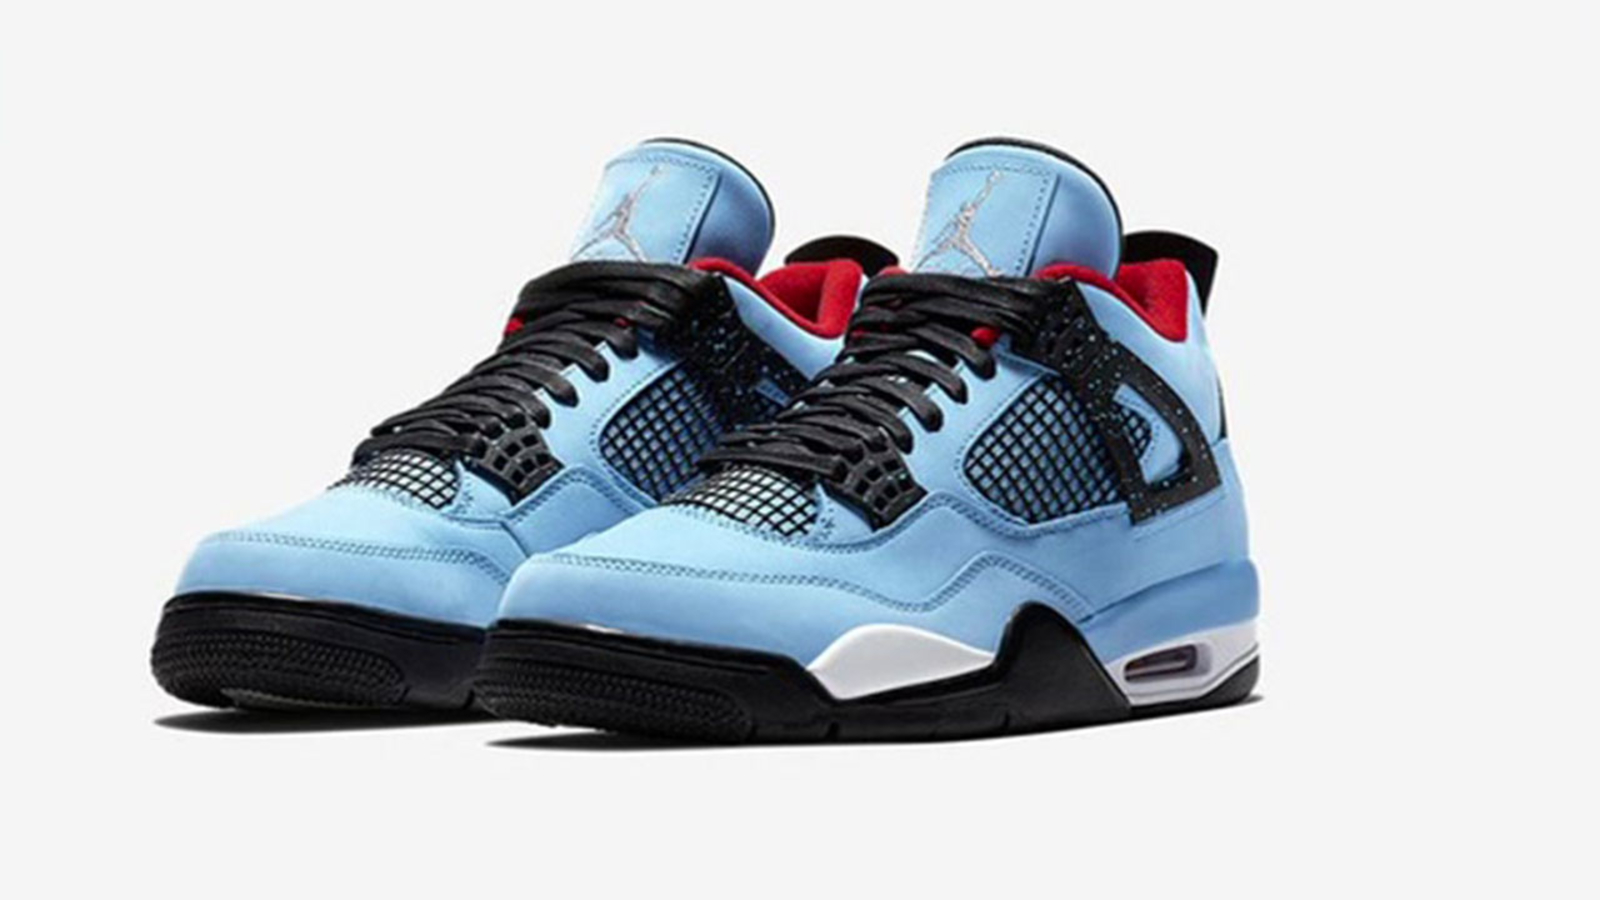 5b3280f4d702 Rapper Travis Scott s new shoes to pay homage to Houston Oilers ...